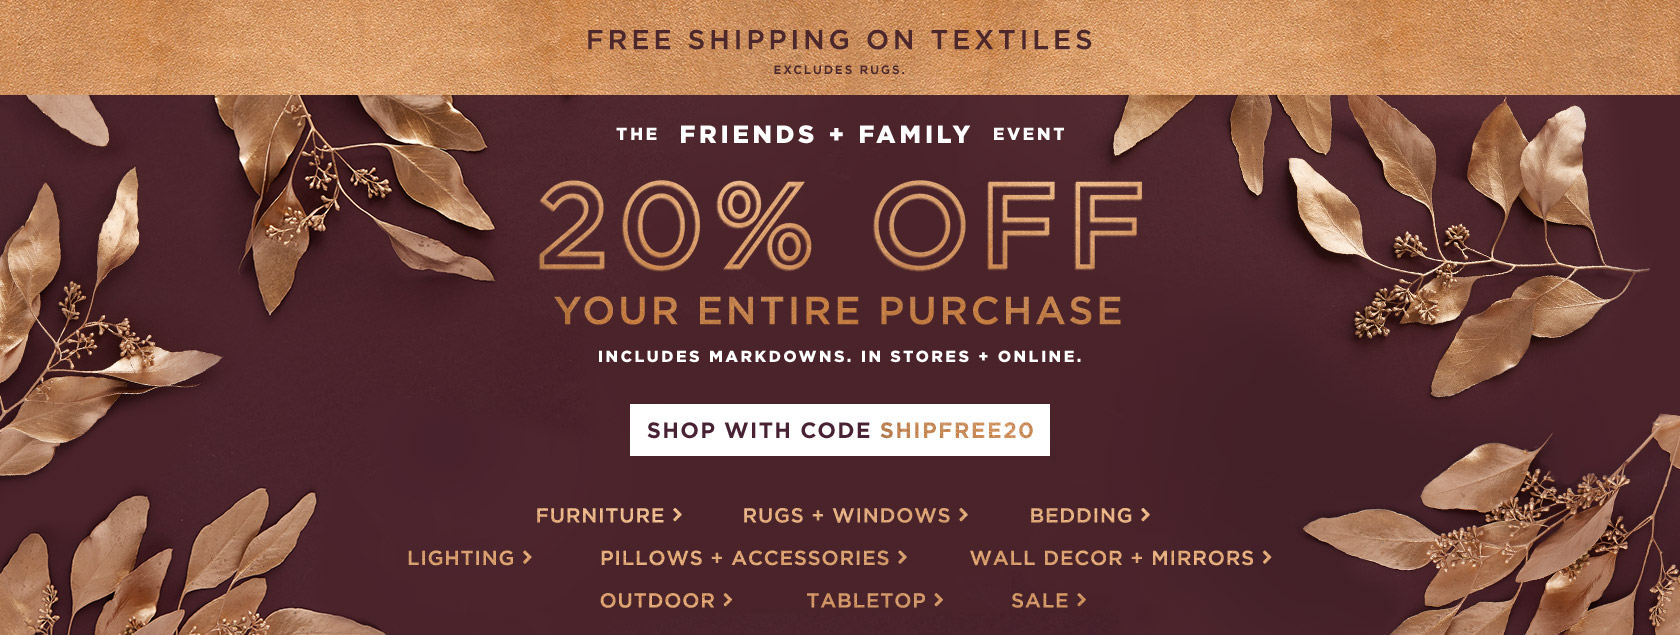 The Friends + Family Event - 20% Off Your Entire Purchase + Free Shipping On Textiles With Code SHIPFREE20